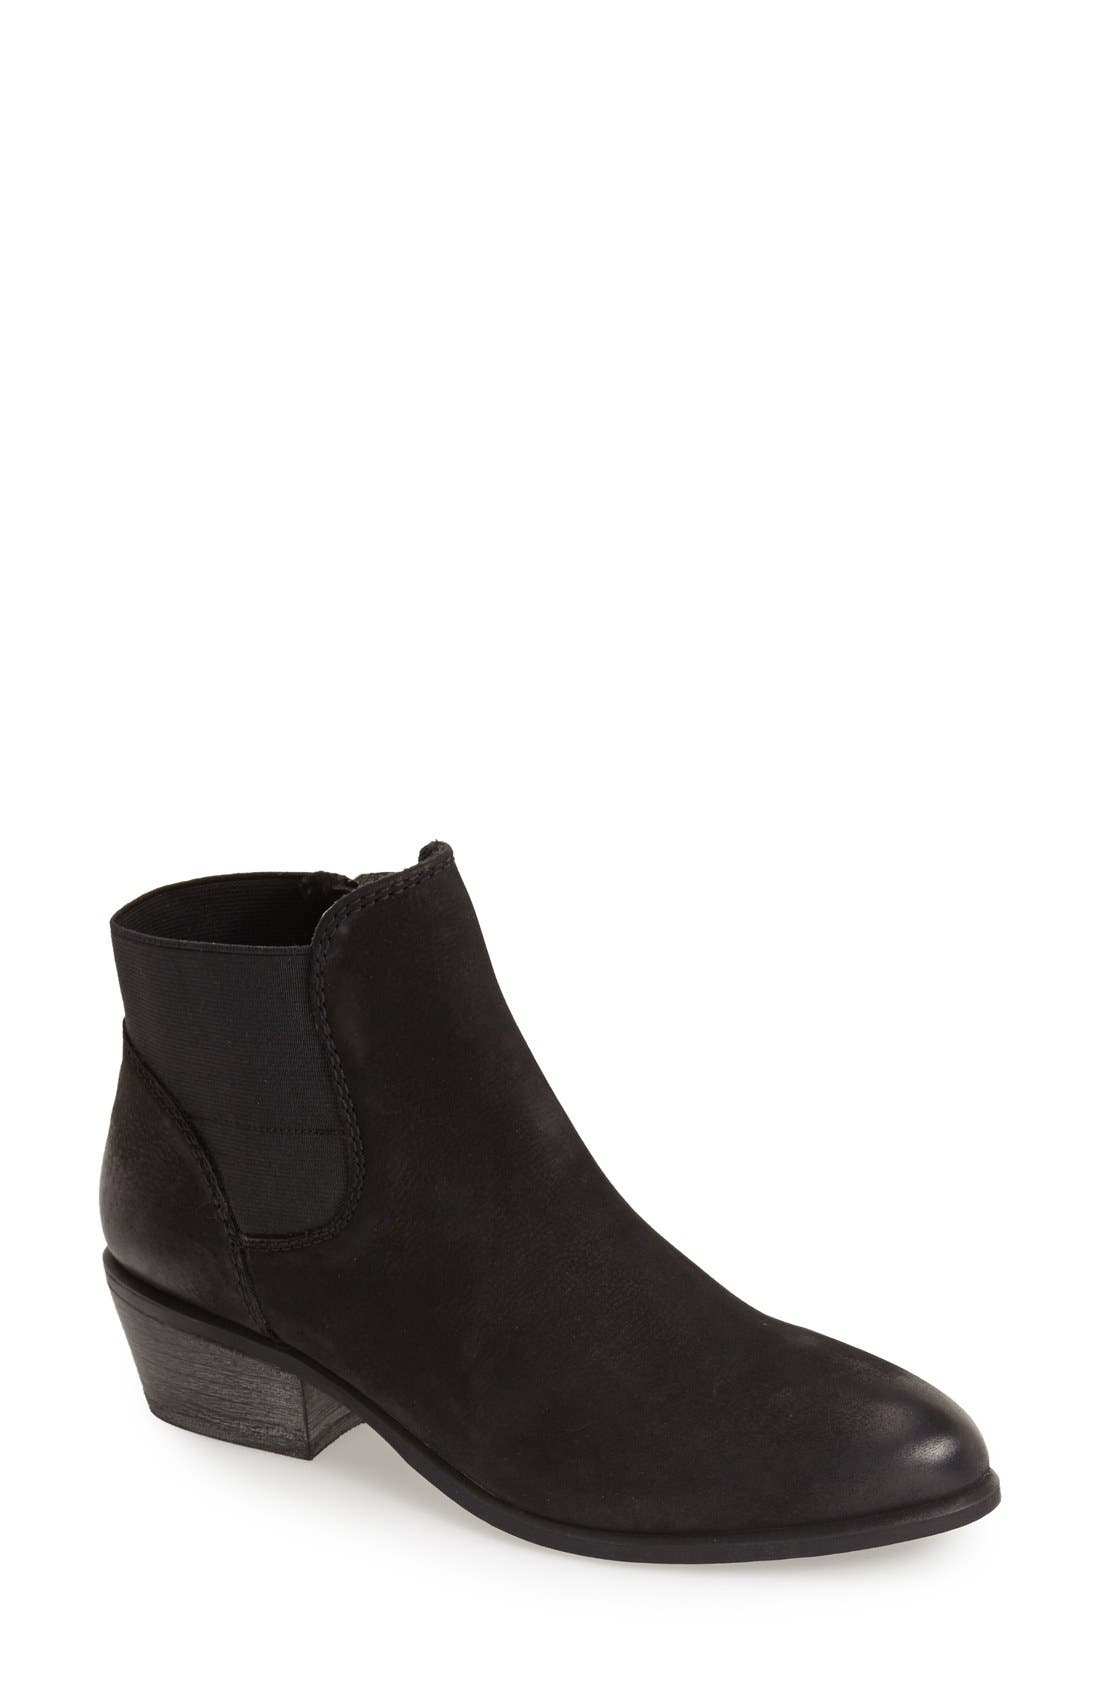 'Rozamare' Leather Ankle Bootie,                             Main thumbnail 1, color,                             001